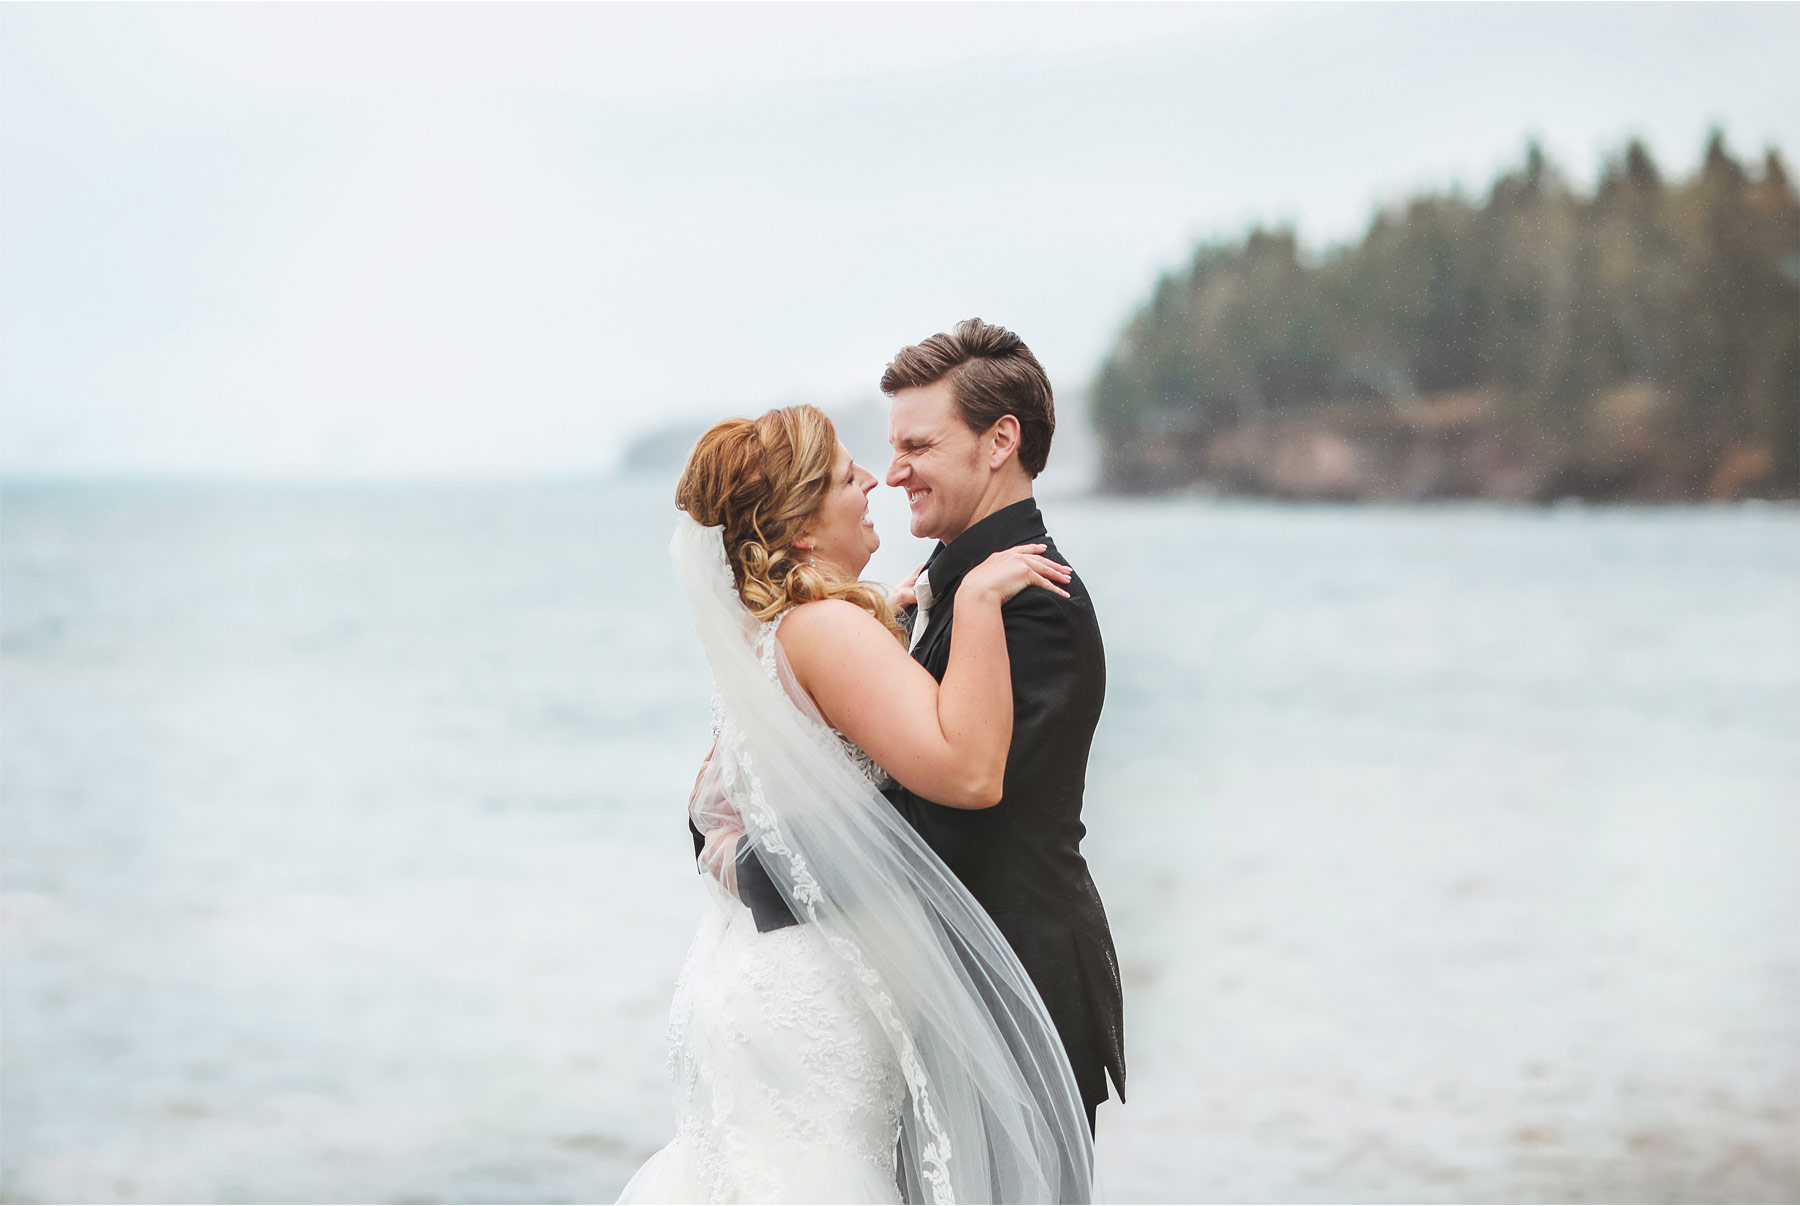 08-Minnesota-Wedding-by-Andrew-Vick-Photography-Grand-Superior-Lodge-Duluth-Two-Harbors-Bride-Dress-Lake-Superior-Rain-Groom-Veronica-and-Tyler.jpg